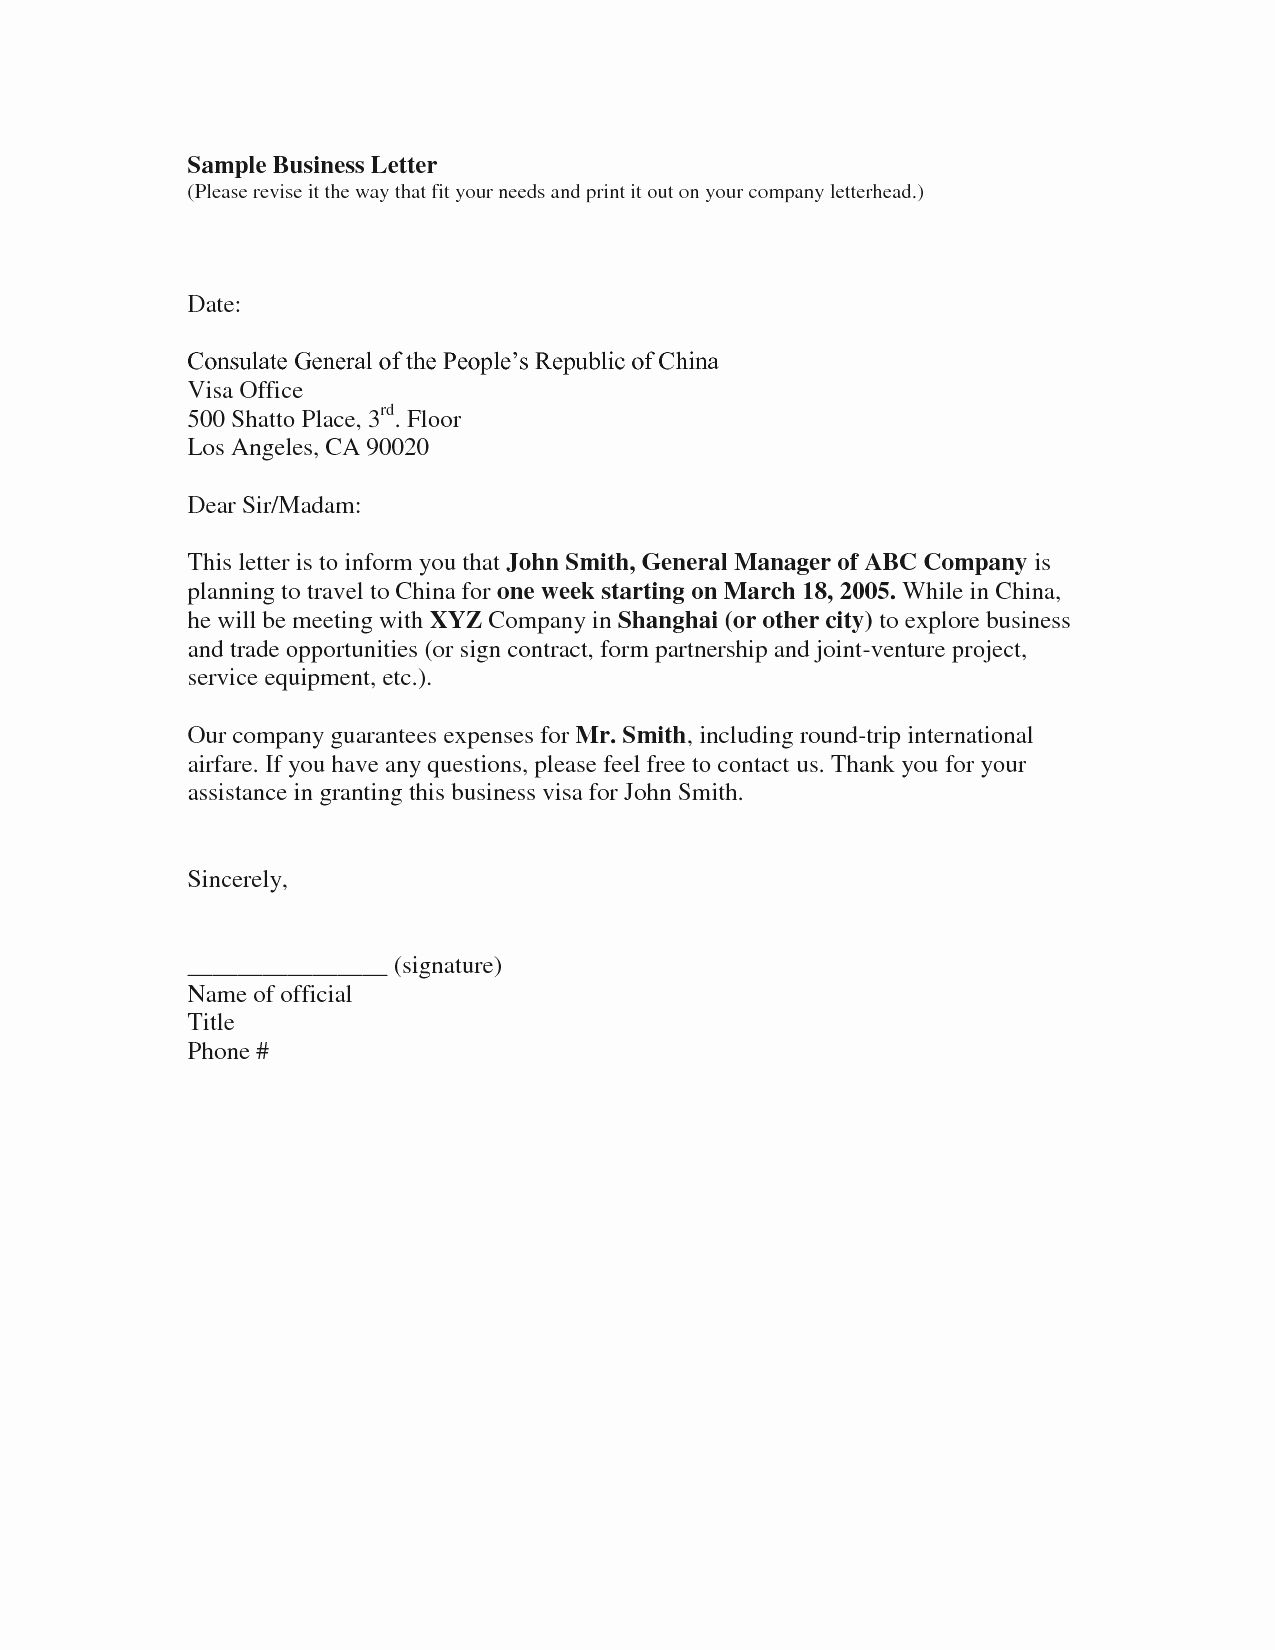 Free Download Business Letter Template Inspirational Business Letter Template Free Example Mughals